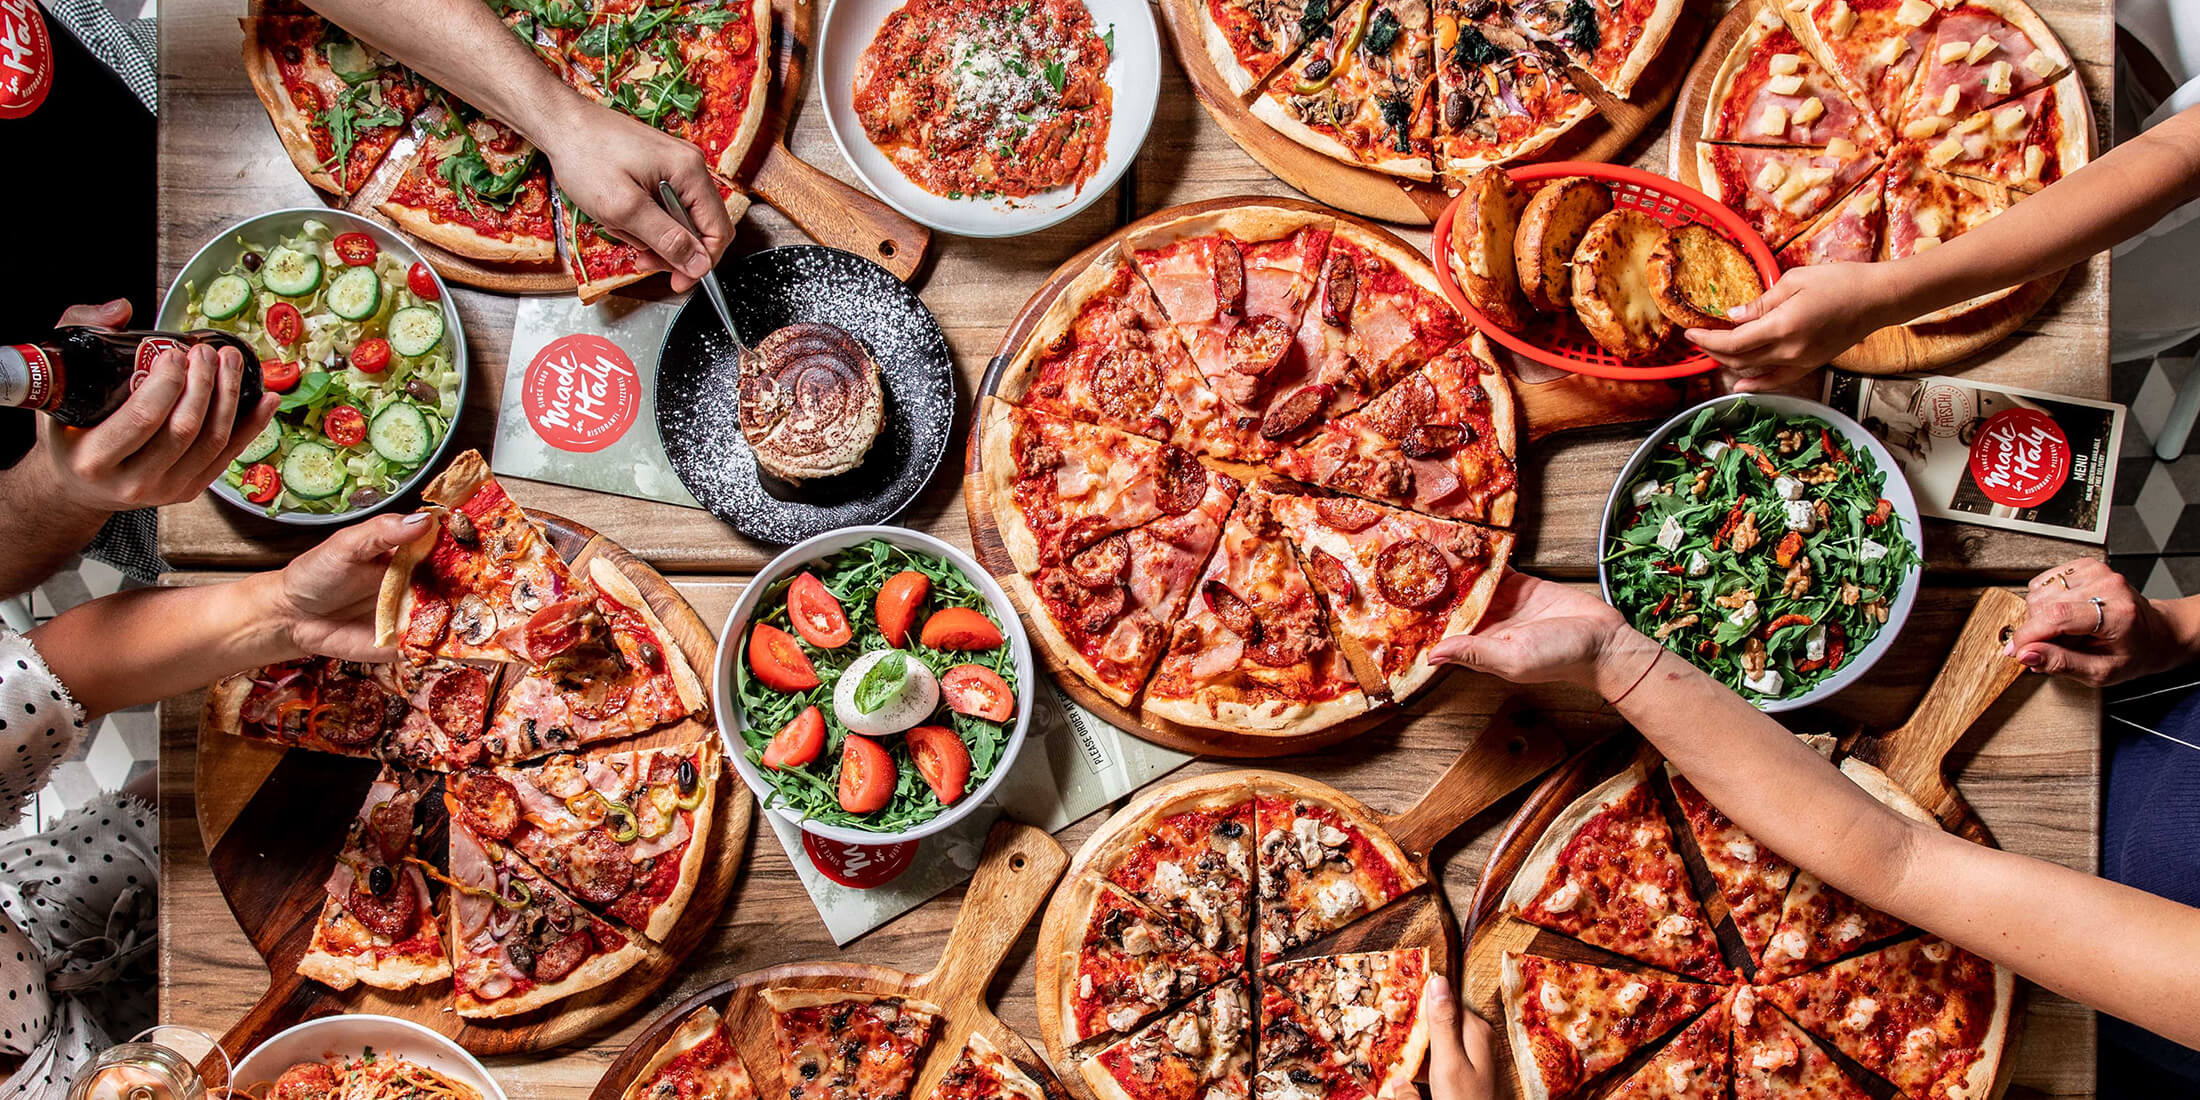 Made in Italy is an Italian restaurant in Sydney CBD serving pizza and pasta including take away.